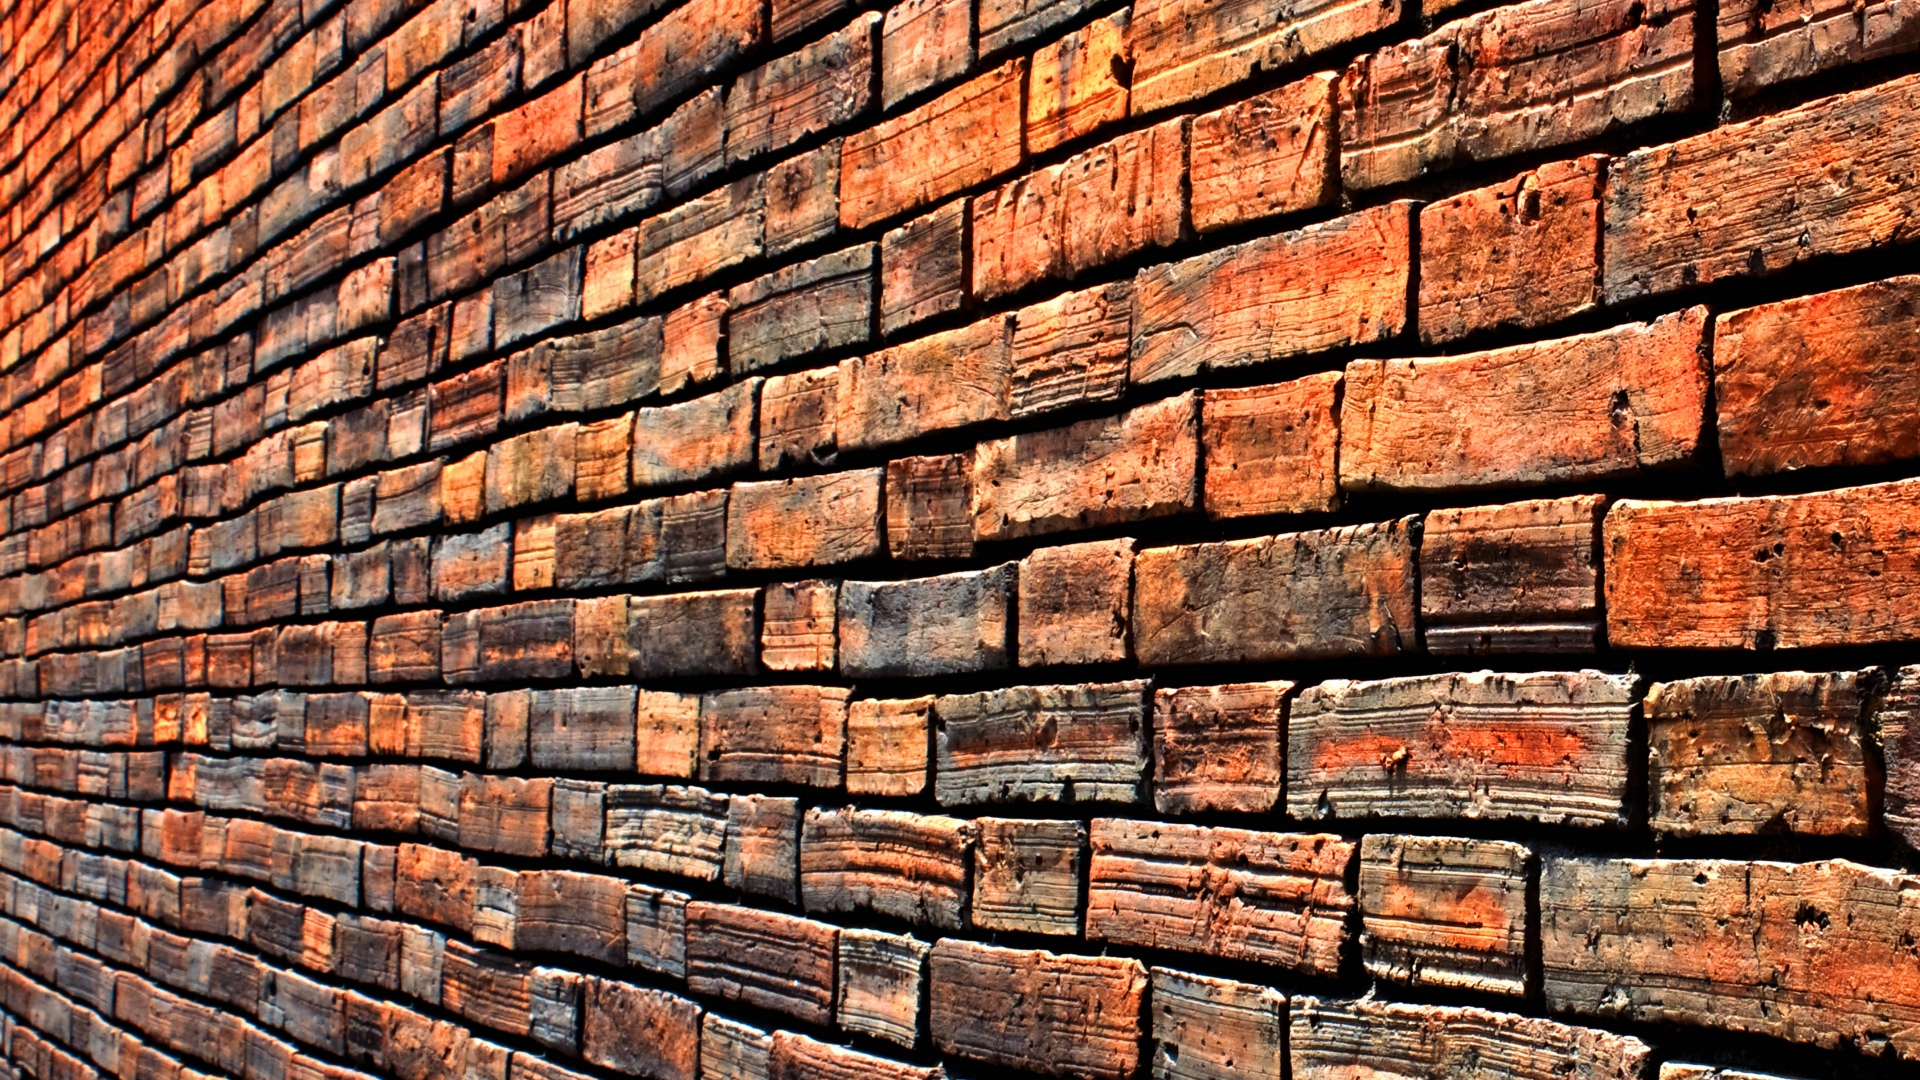 Beautiful-Background-Wall-Brick-Side-1920x1080-Need-iPhone-S-Plus-Background-for-wallpaper-wp3802938